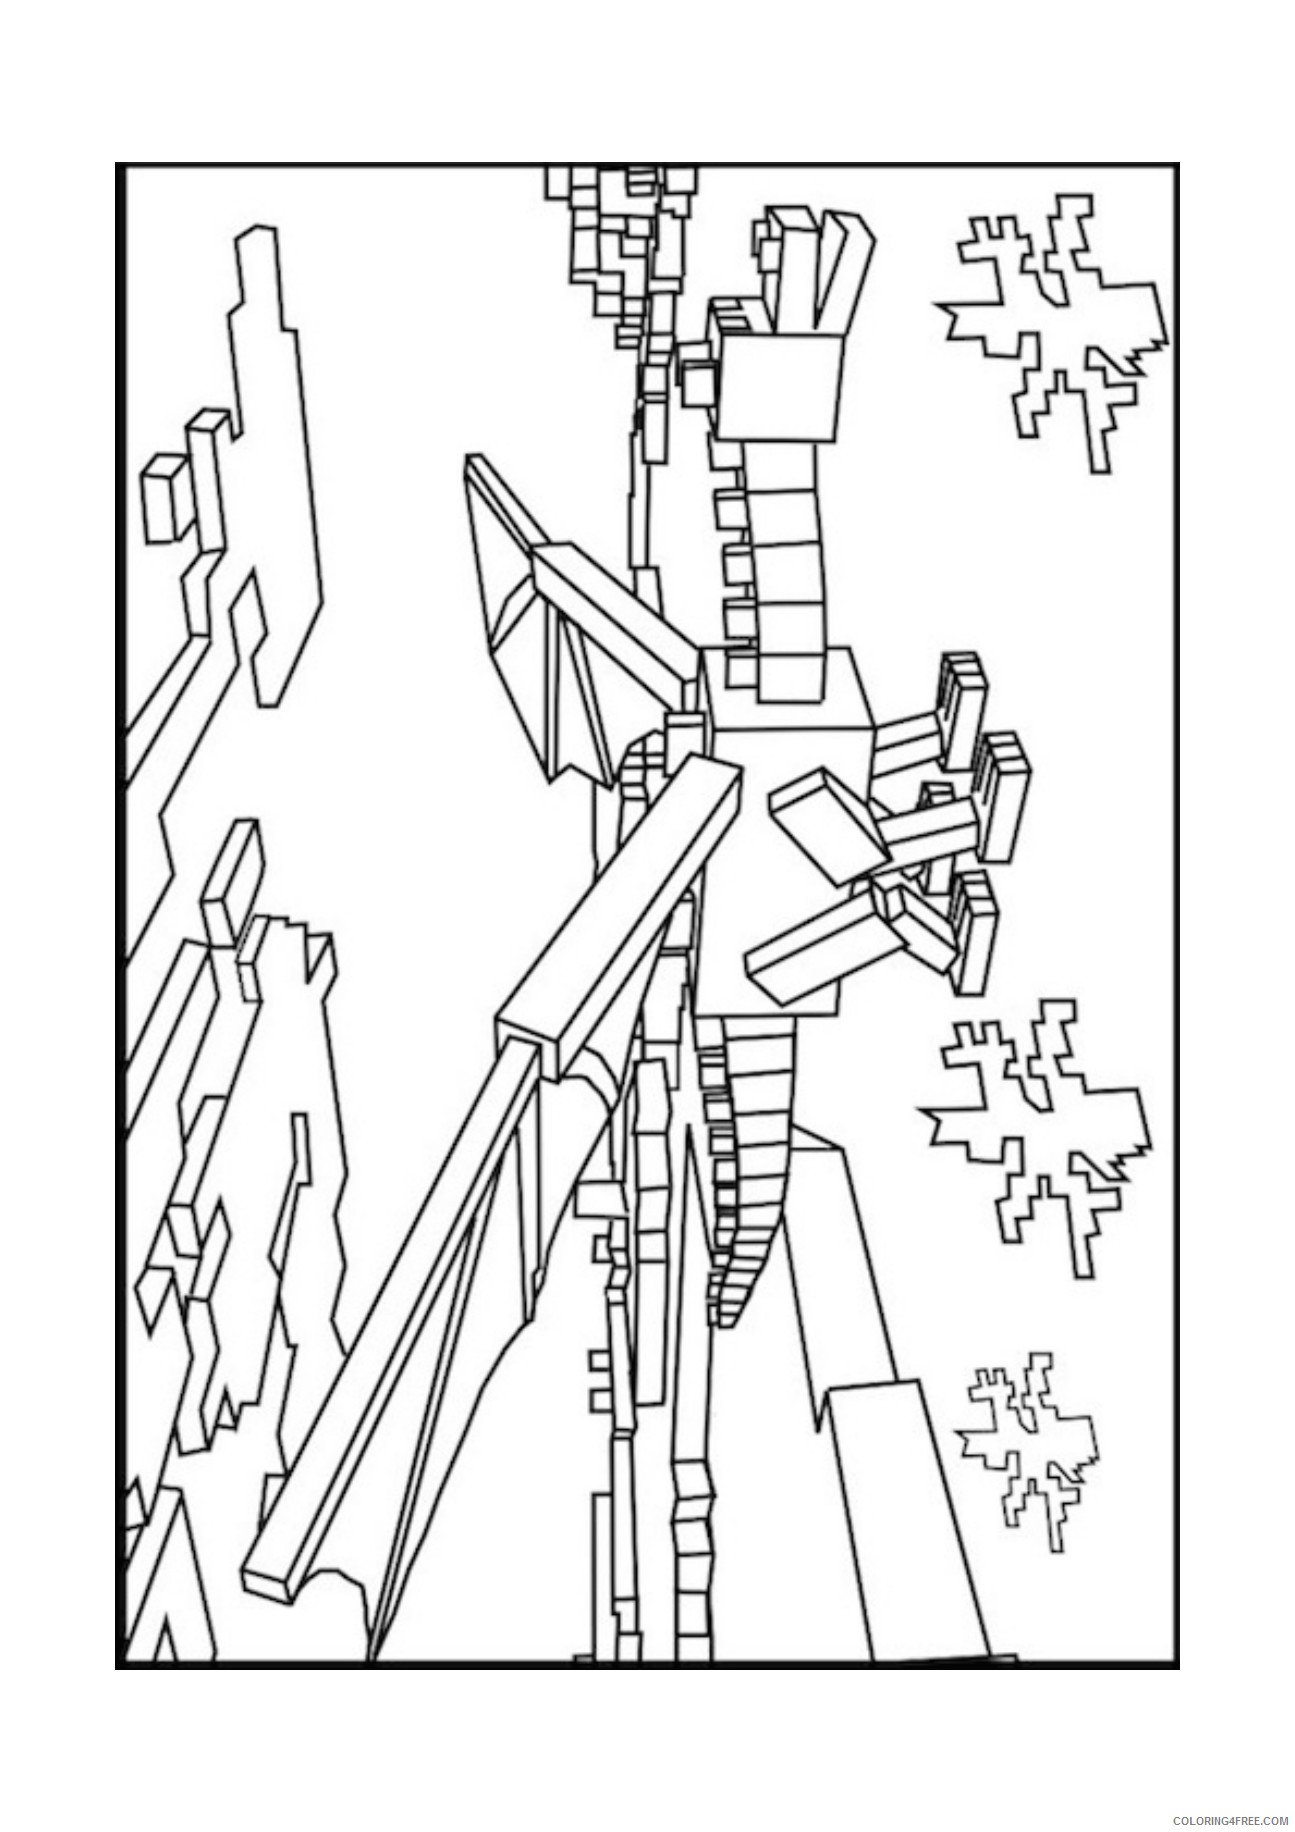 mine craft coloring pages minecraft mobs a minecraft coloring page for kids mine coloring craft pages